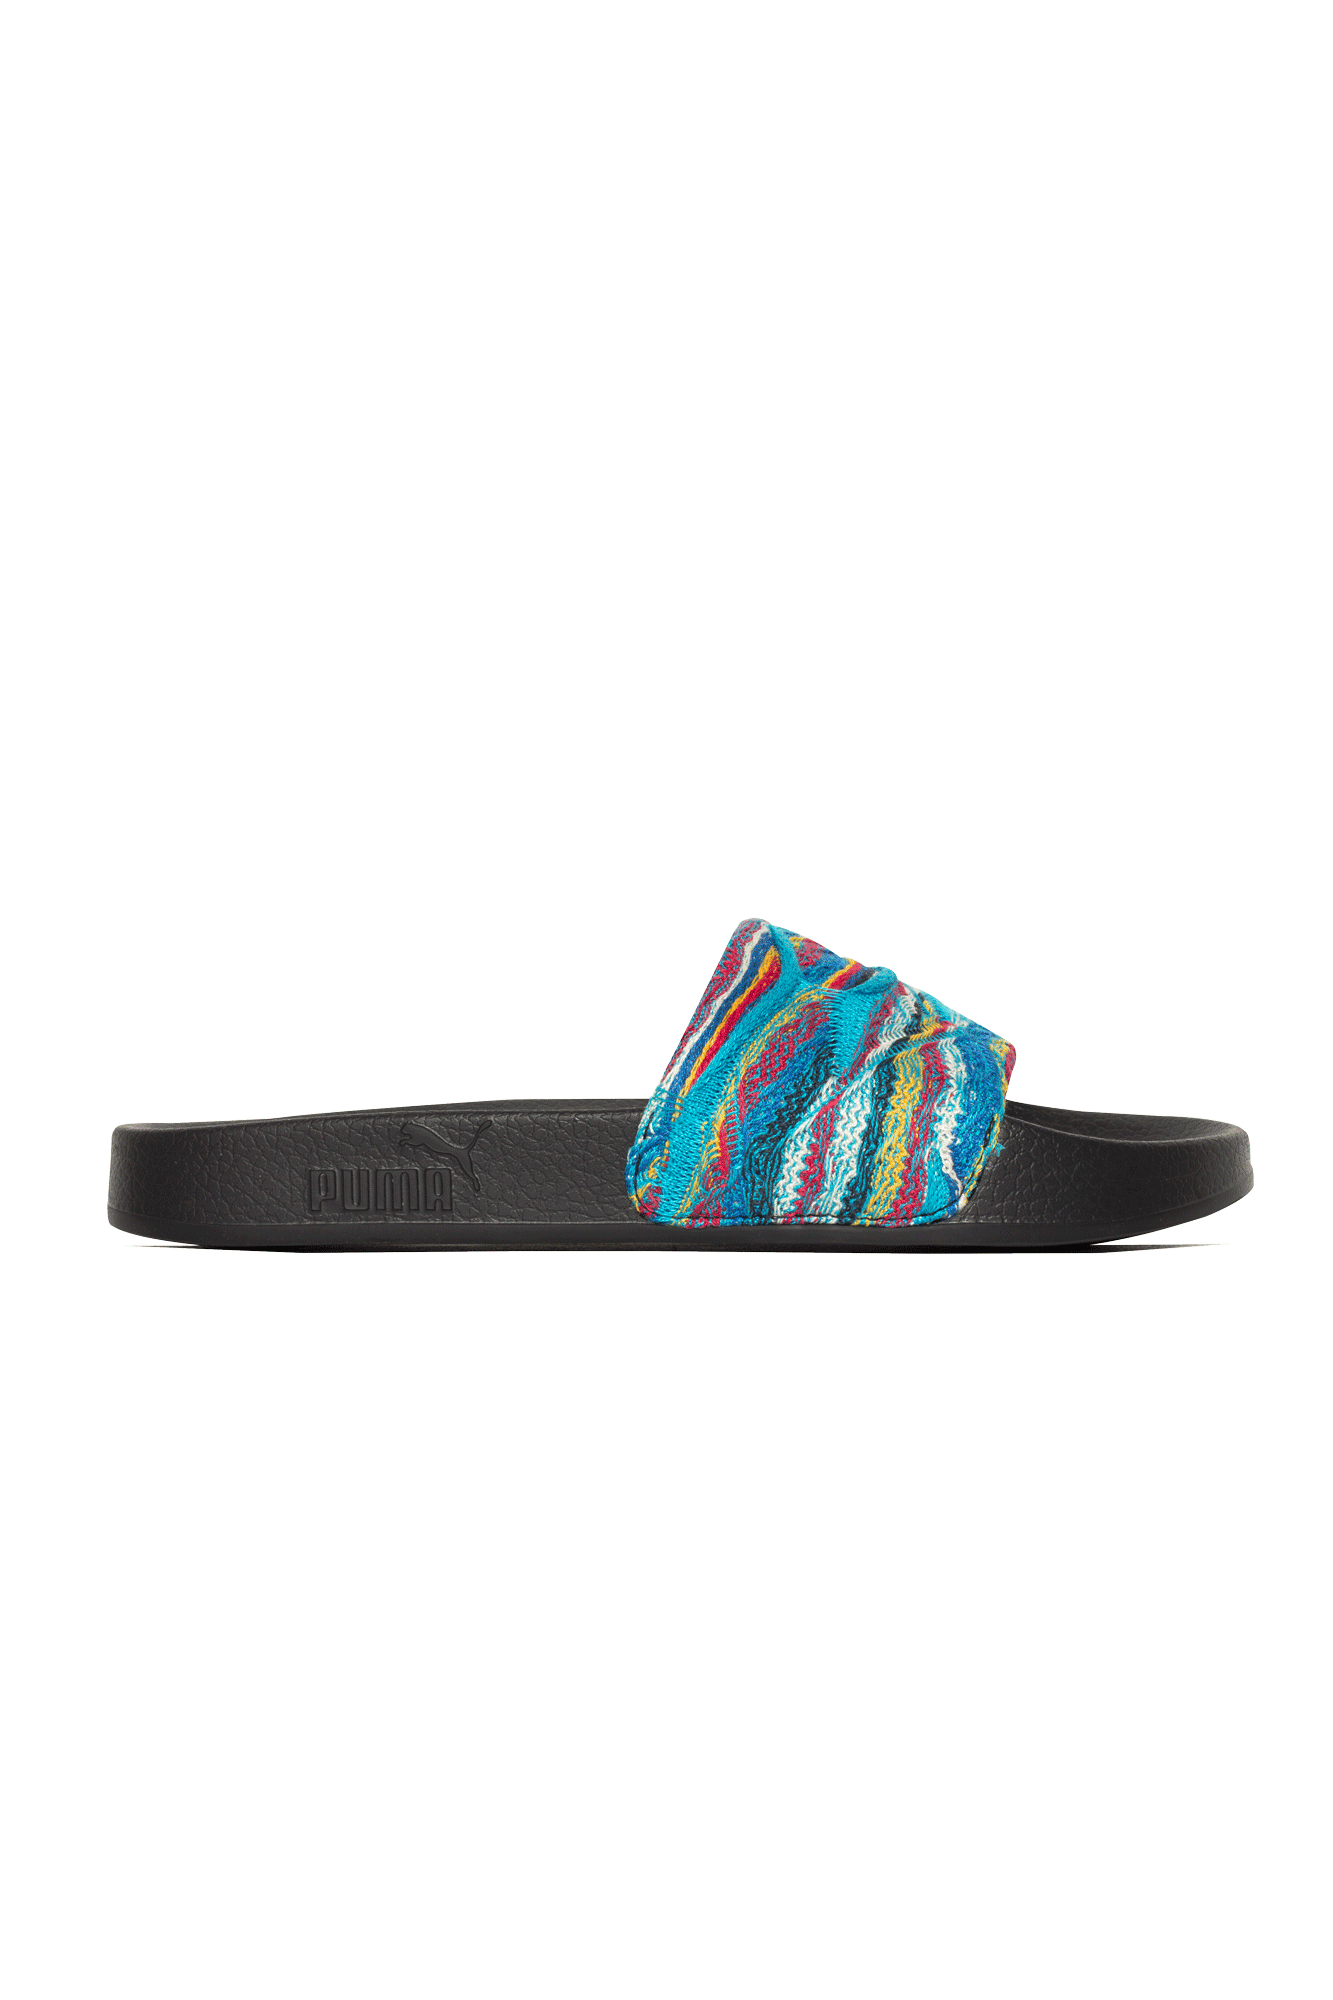 Puma Sandali & Ciabatte Leadcat Coogi Multi Nero Nero - One Block Down